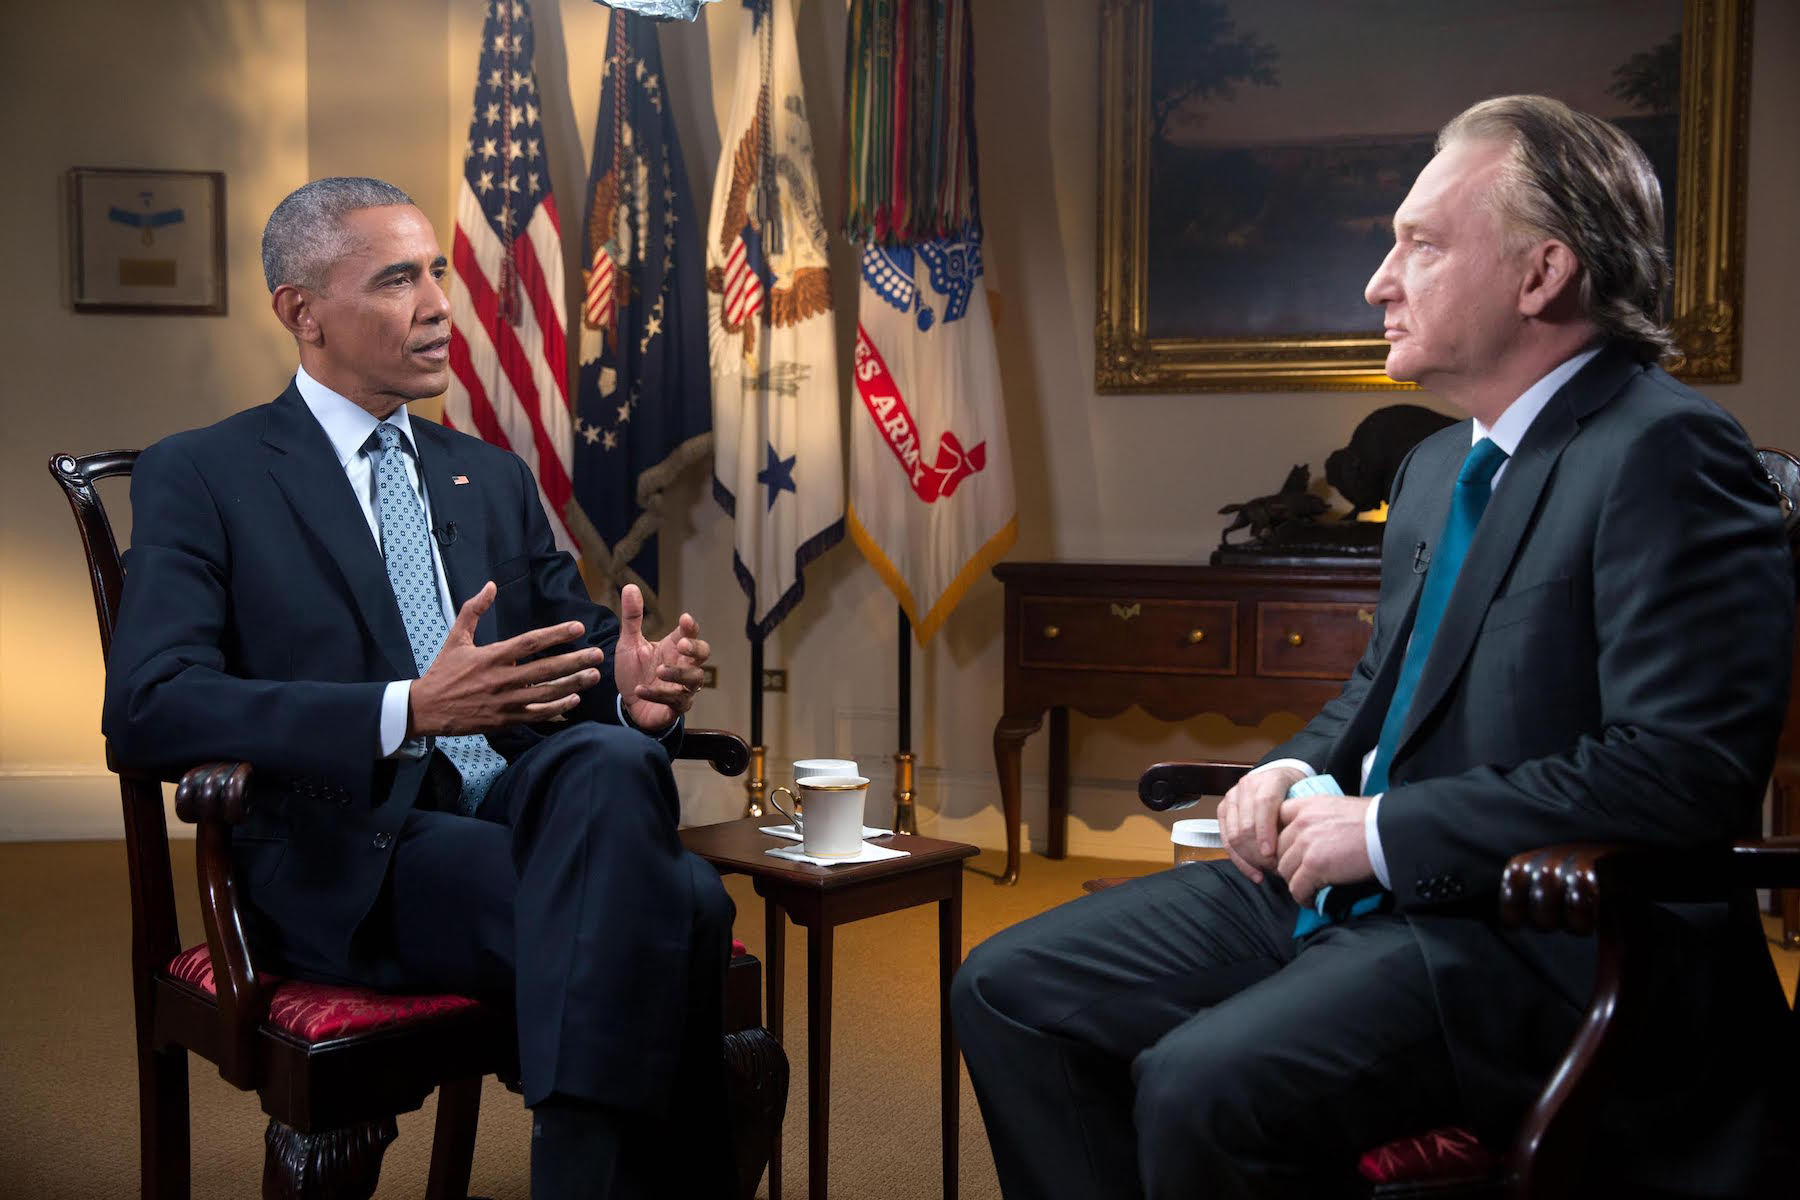 """In this Tuesday, Nov. 1, 2016 photo provided by HBO, host Bill Maher, right, speaks with his interview guest, President Barack Obama, left, during a taping of the television show """"Real Time with Bill Maher,"""" at the White House in Washington. The show aired on HBO's """"Real Time"""" Friday night, Nov. 4. Obama spoke with pride of his achievements during his two terms as chief executive, saying """"every single issue we've made progress on"""" will be on the ballot next Tuesday in the form of the opposing candidates. (Amanda Lucidon/HBO via AP)"""